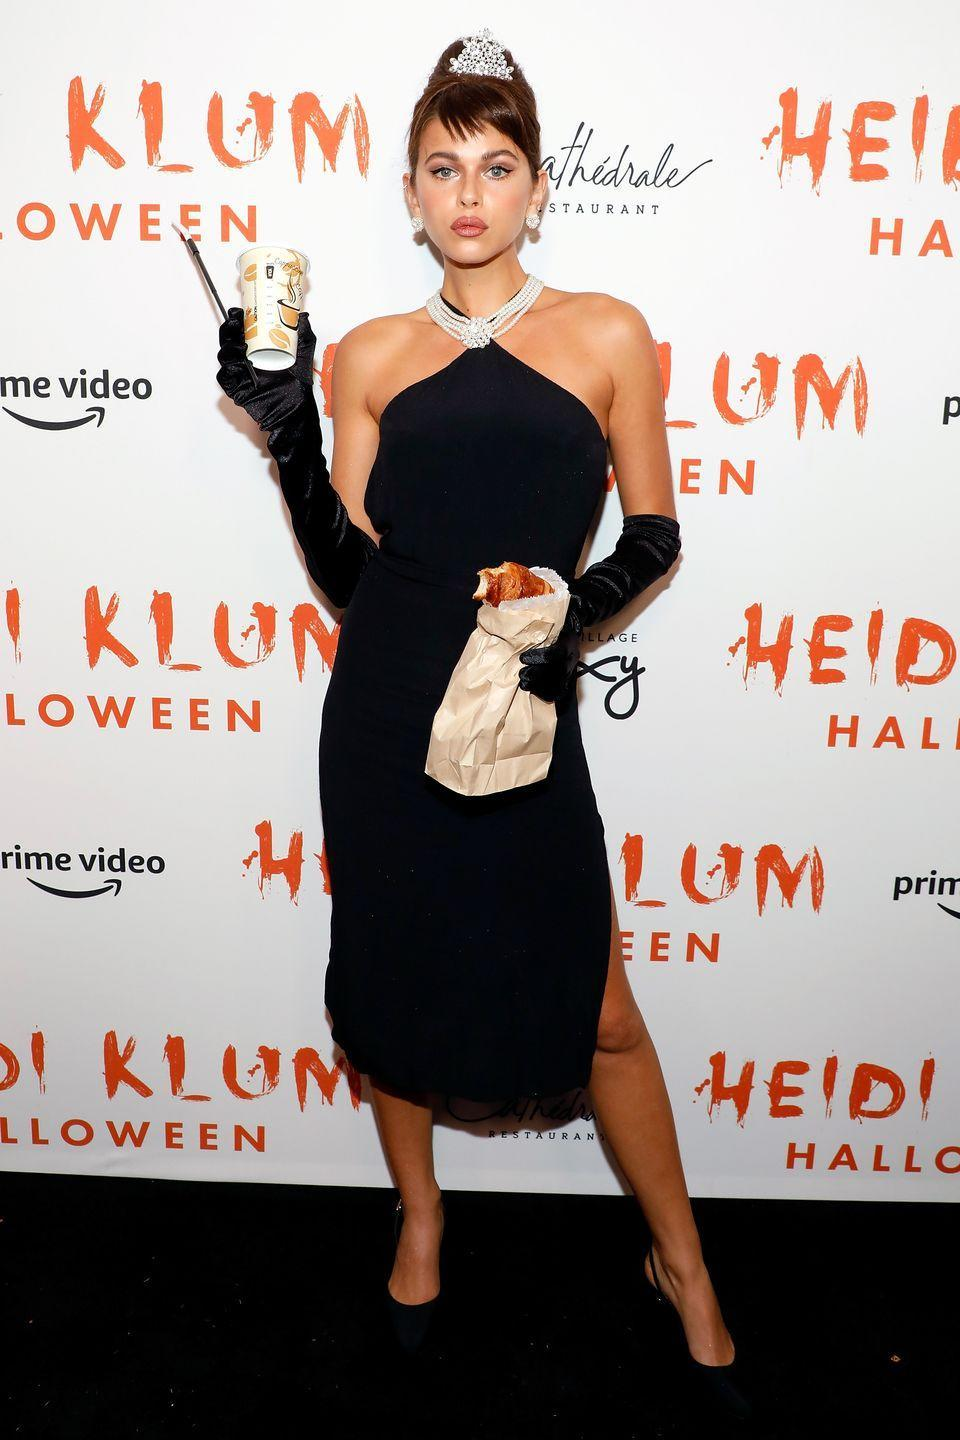 <p>The model went full Breakfast at Tiffany's Audrey Hepburn, even accessorising with a coffee and croissant, for Klum's A-List filled party.</p>